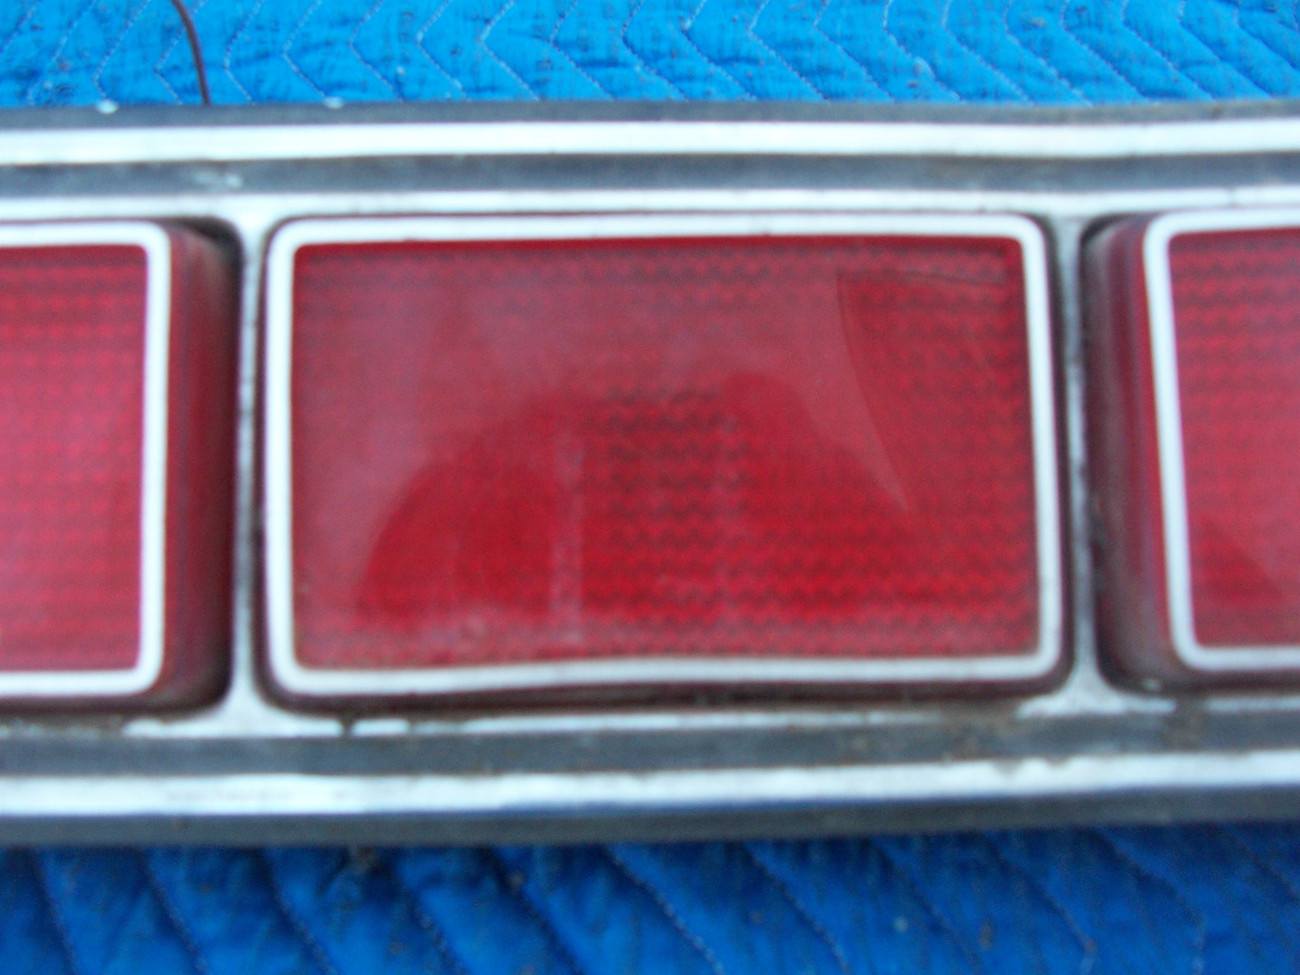 1973 MARQUIS 2 DOOR BROUGHAM RIGHT TAILLIGHT OEM USED ORIGINAL MERCURY FORD PART image 6